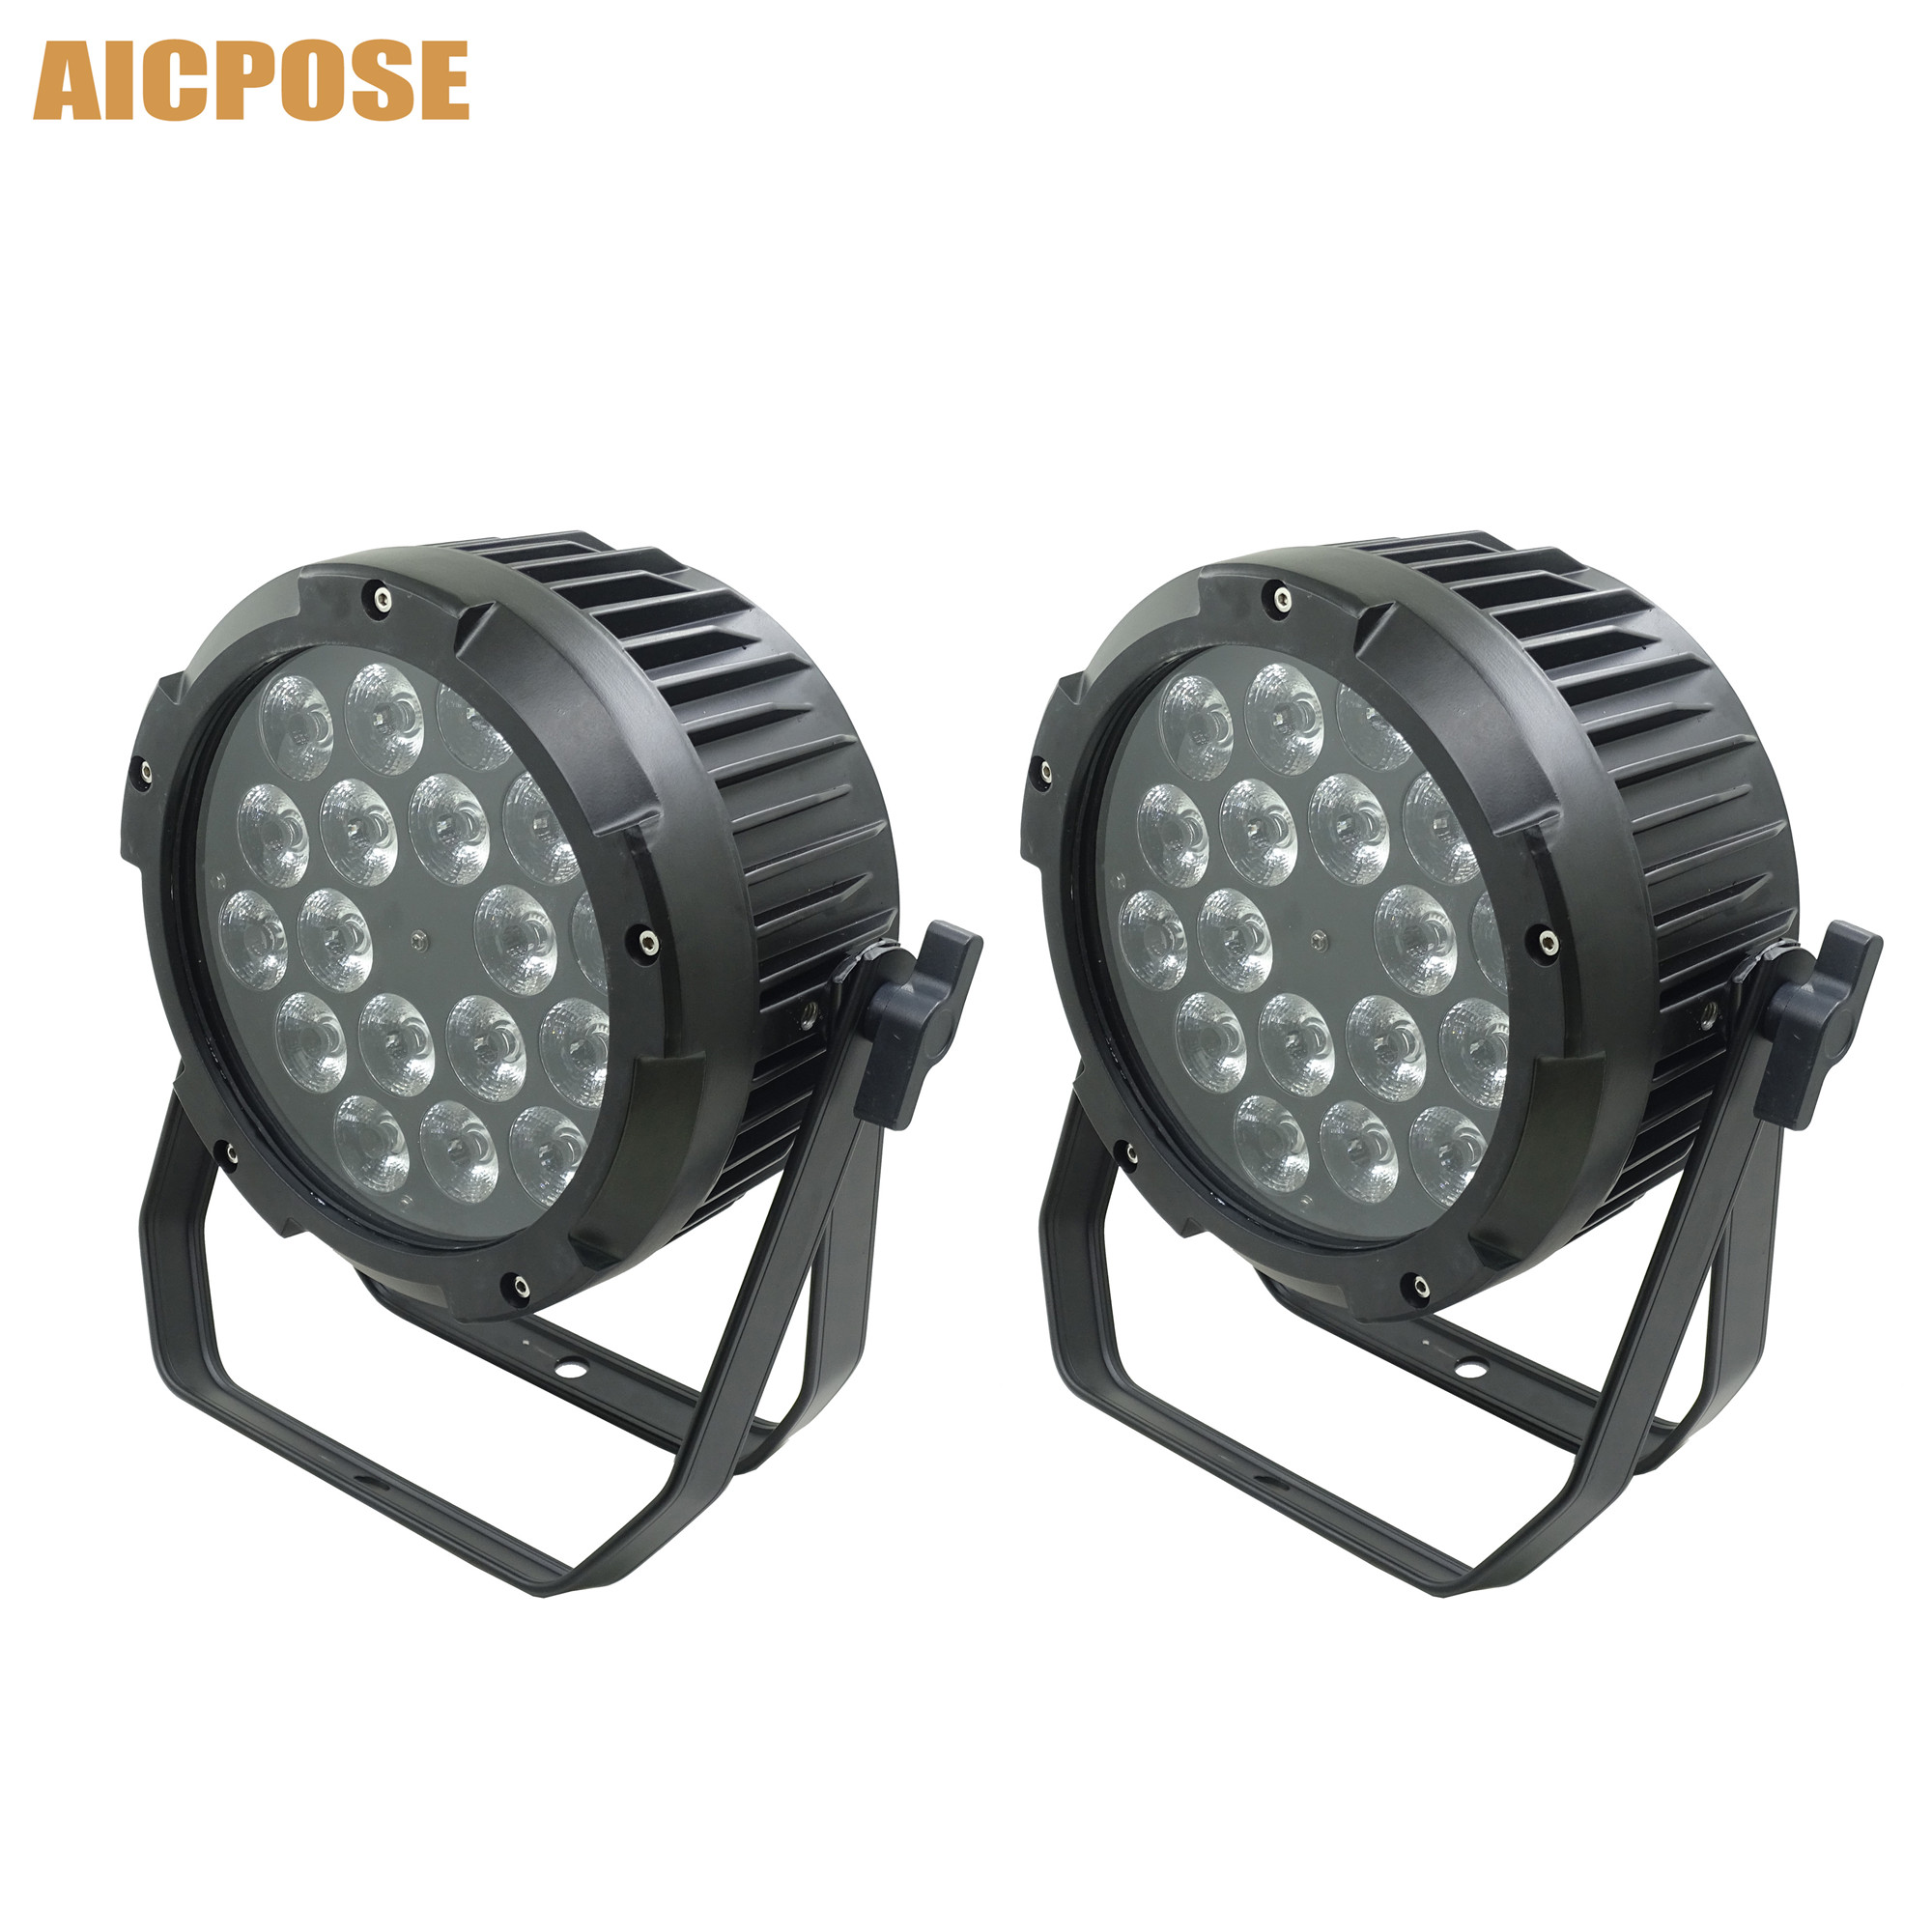 Waterproof 18x18w 4in1/5in1/6in1 RGBWA UV LED Par Can Light Outdoor Stage DMX Control Par Light Wall Washer